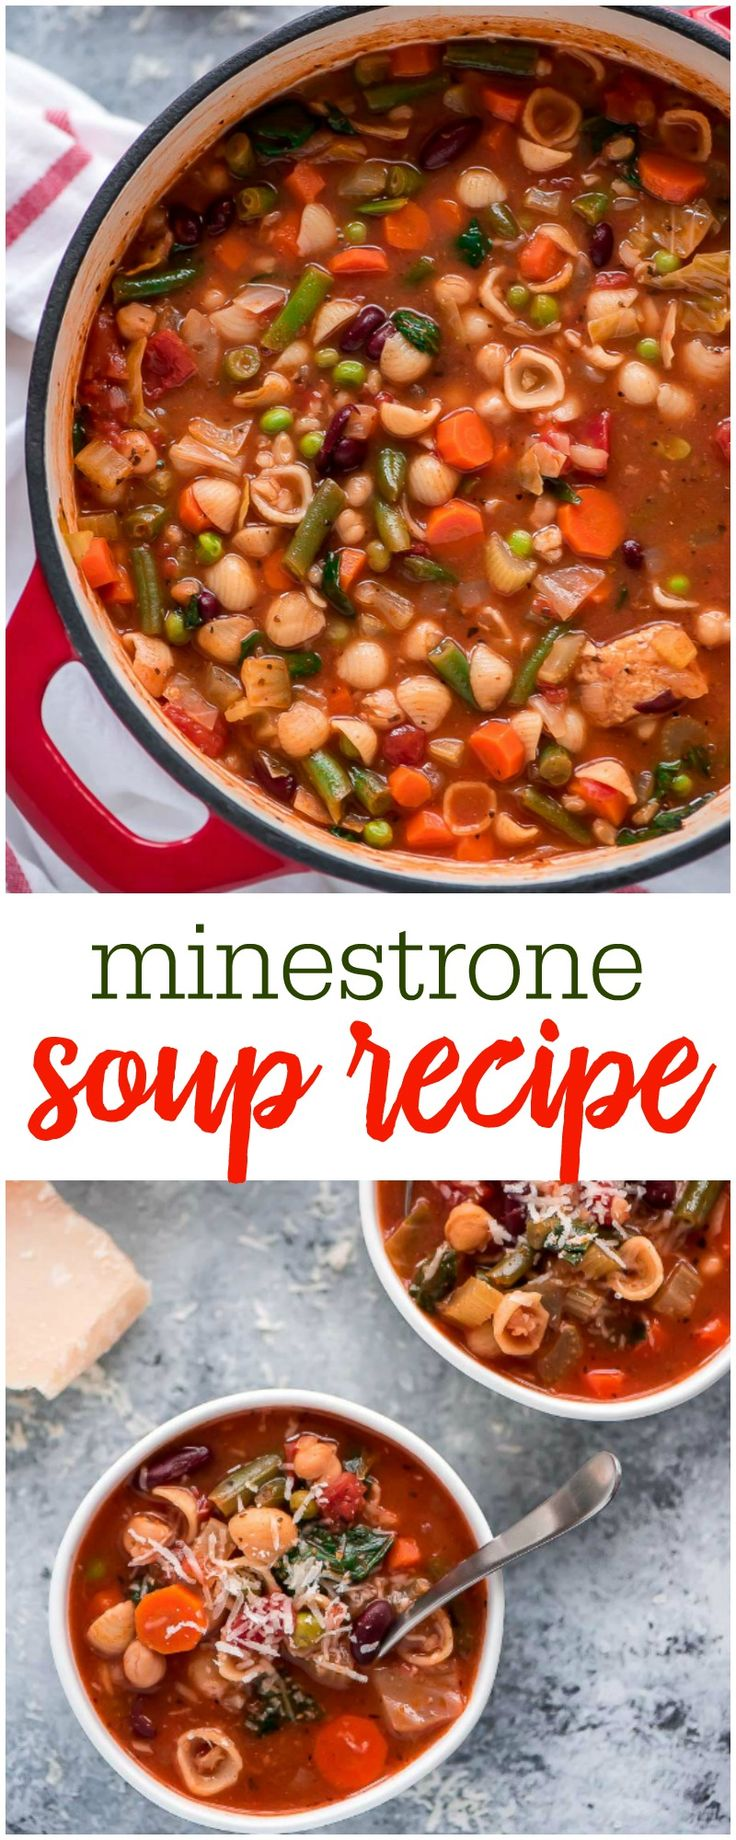 This hearty Minestrone soup is a flavorful Italian soup packed with various colorful vegetables, broth, beans, and pasta.